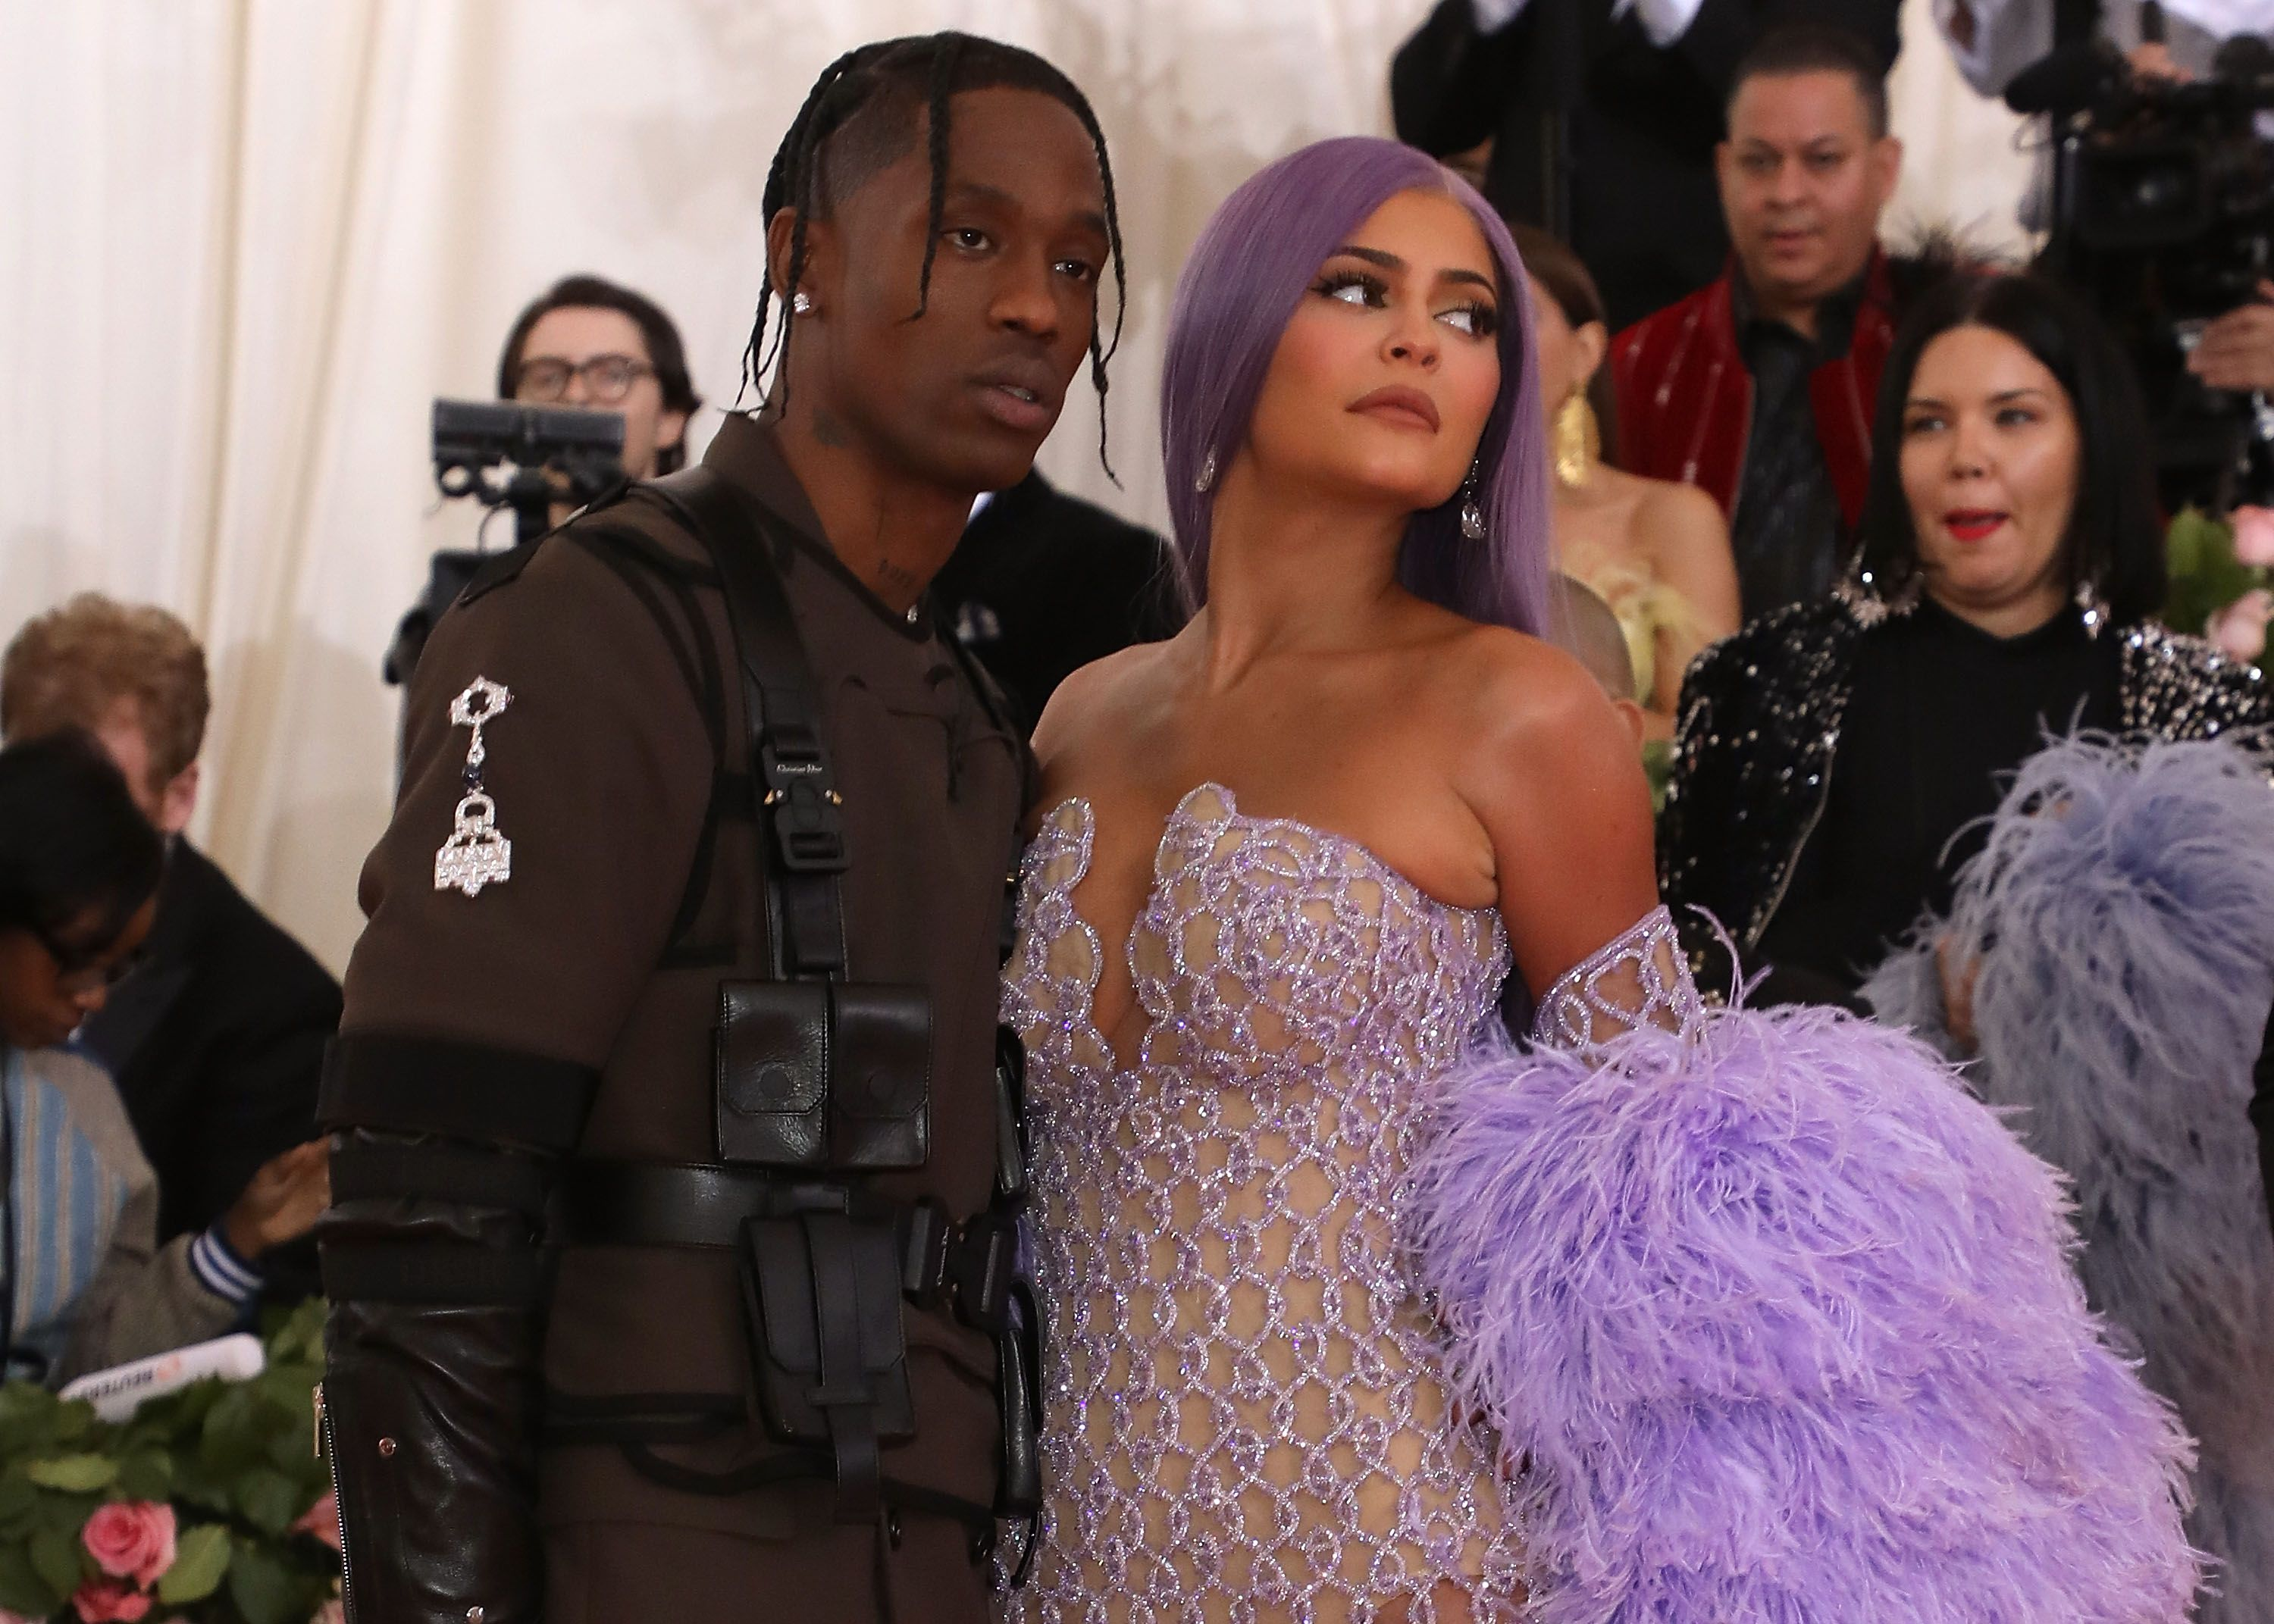 See Kylie Jenner and Stormi in the Trailer for Travis Scott's Upcoming Netflix Special